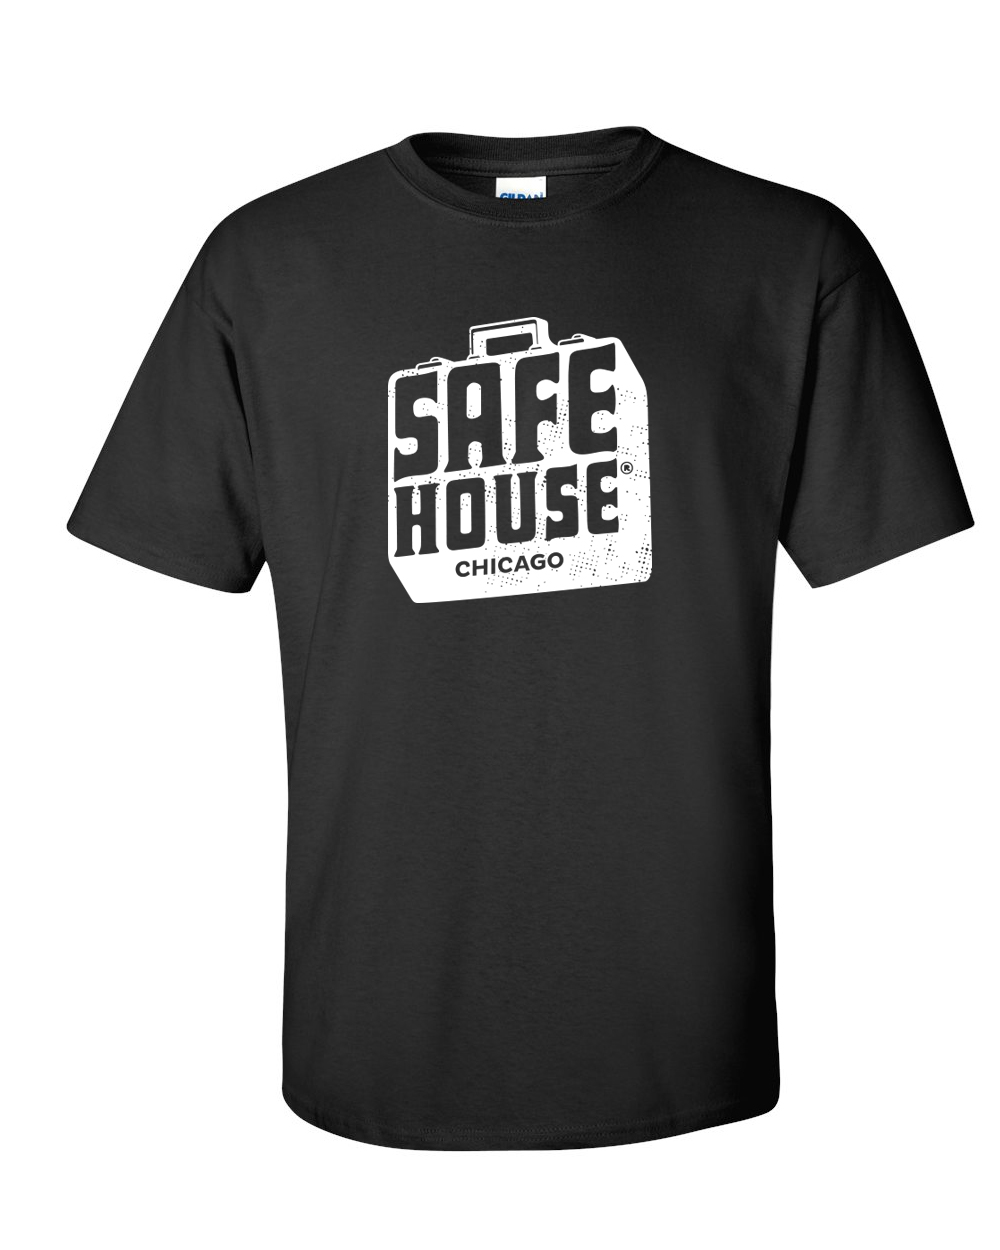 Safehouse Apparel